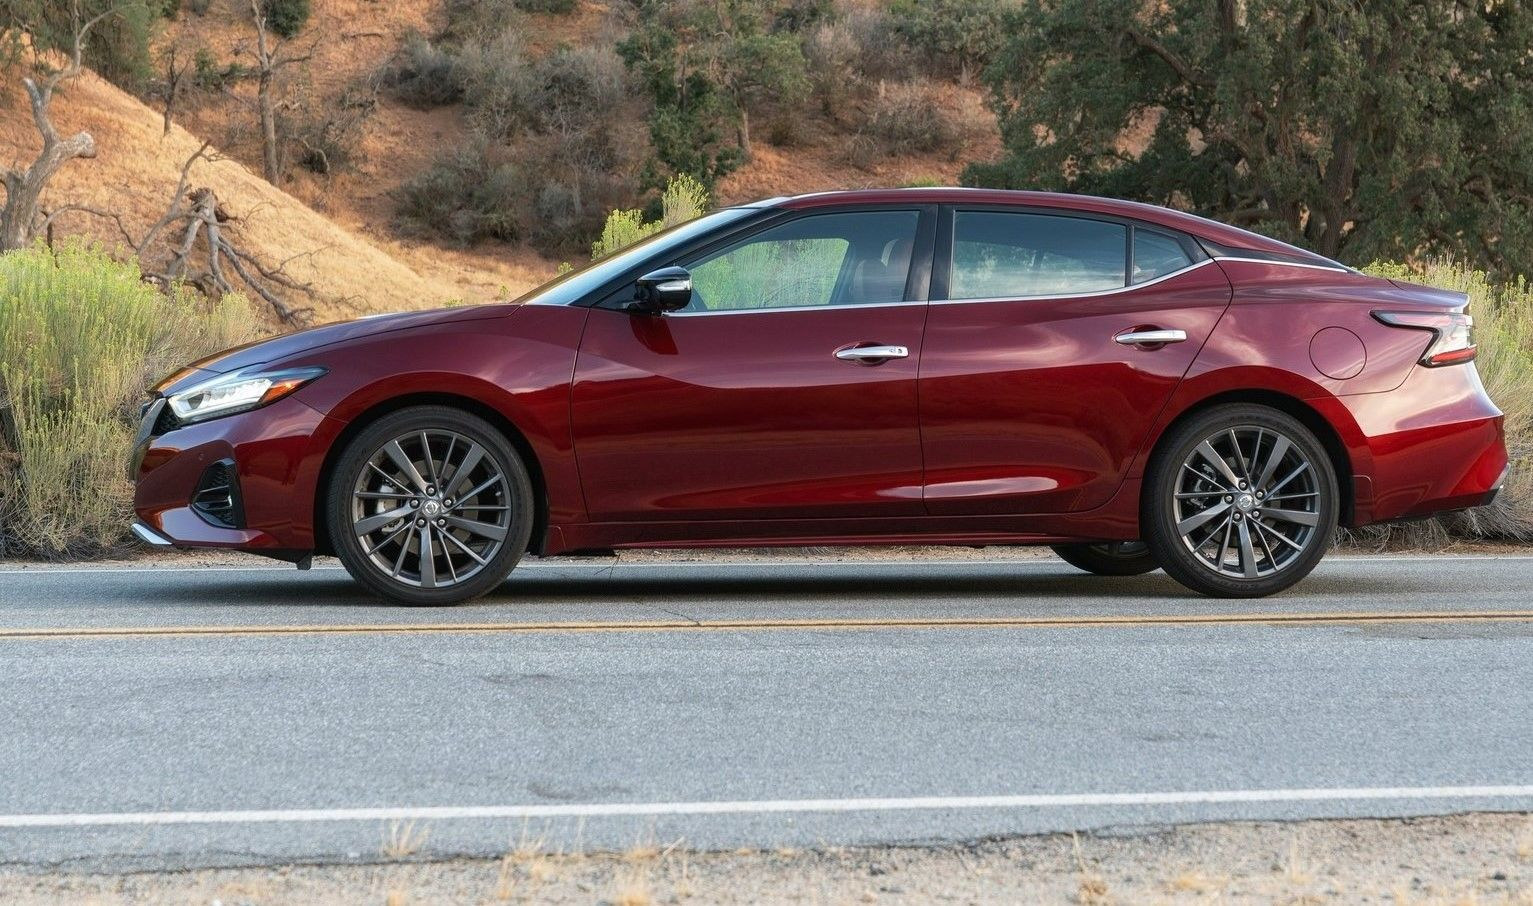 The New 2019 Nissan Maxima and Nissan Pathfinder Rock Creek